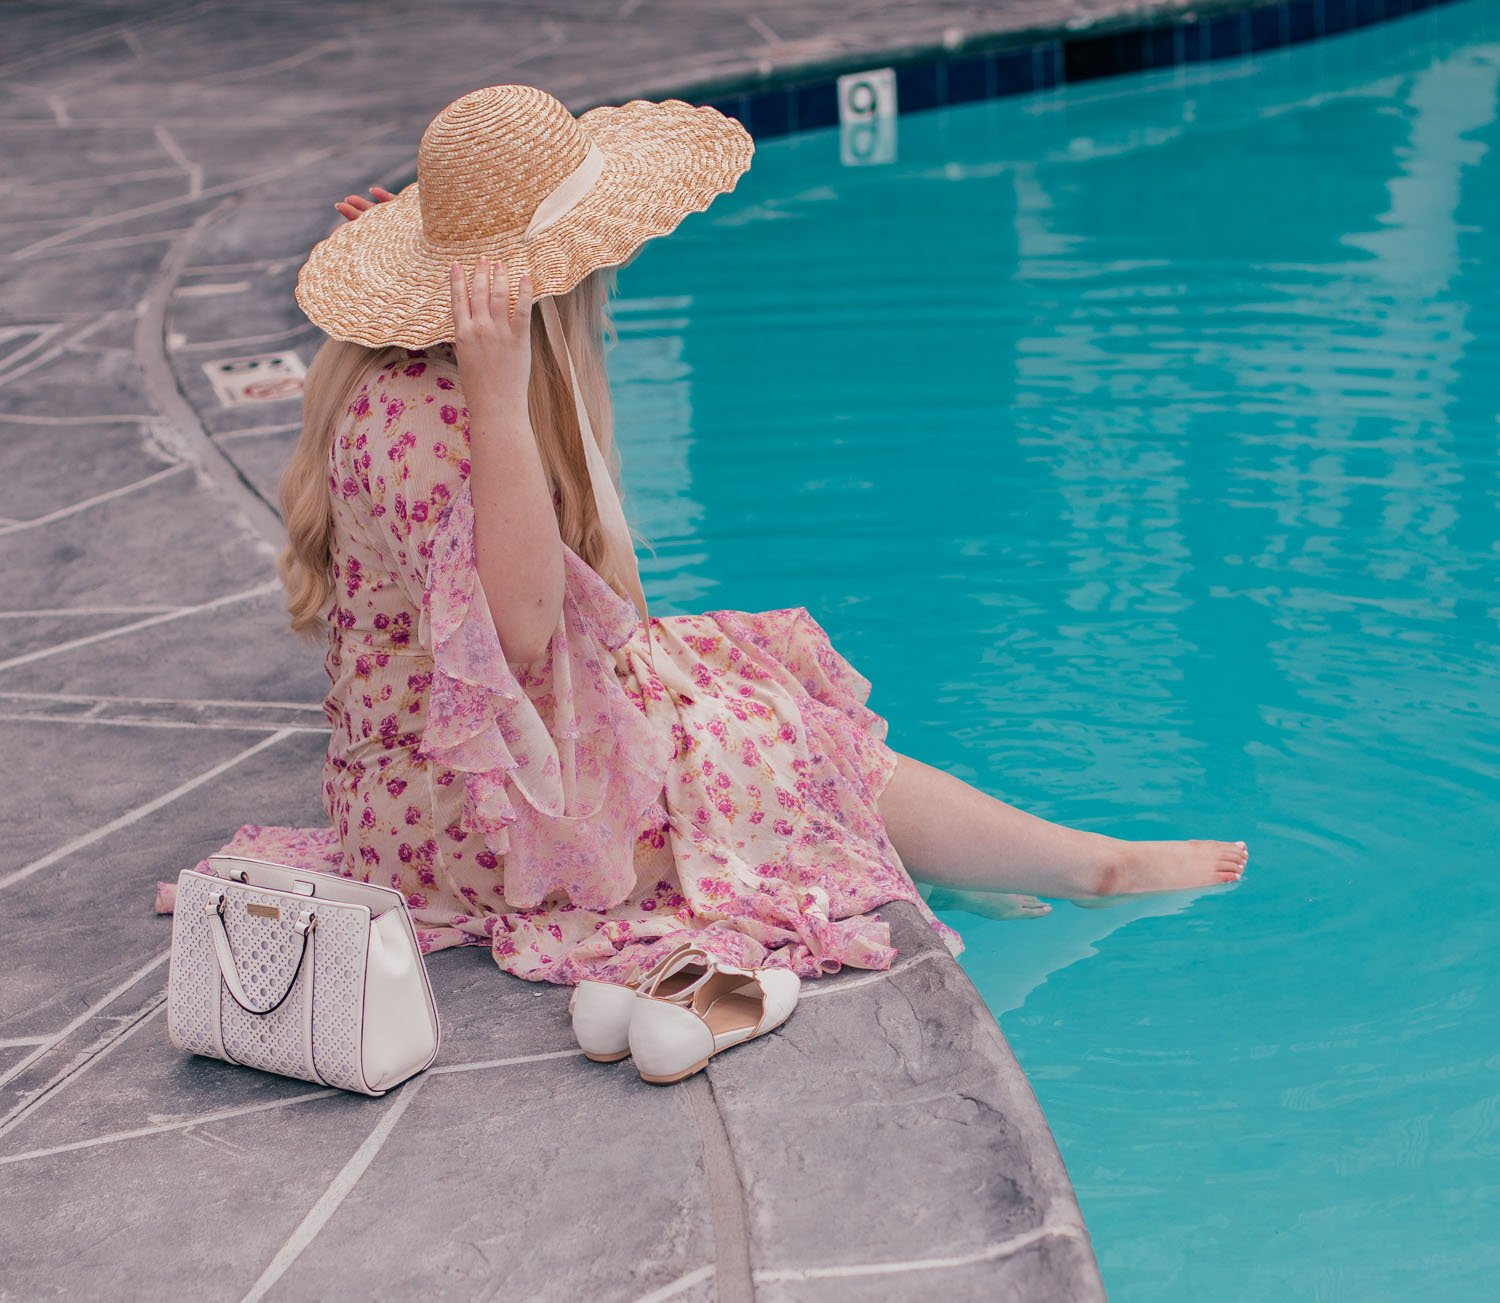 Feminine fashion blogger Elizabeth Hugen of Lizzie in Lace shares her favorite beach outfit including the Lack of Color Dolce Hat